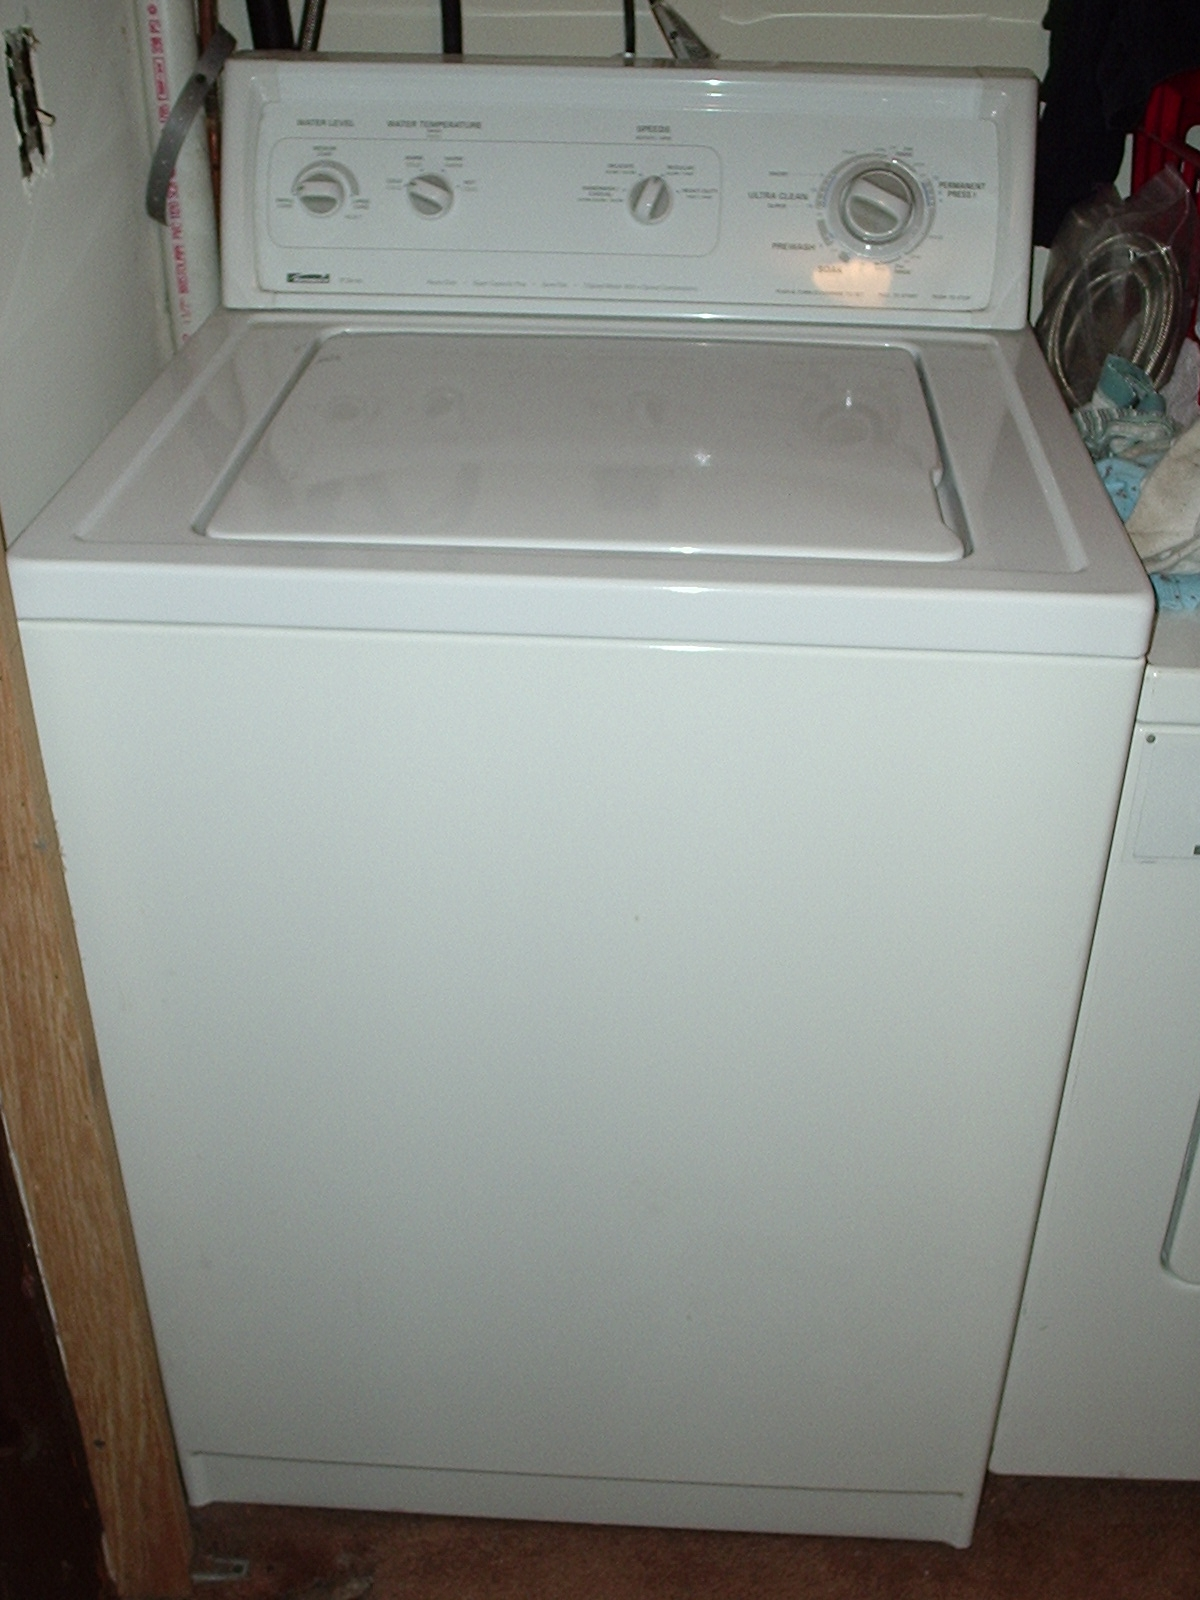 Washing machines at sears full size of heavy duty washer Sears kenmore washer